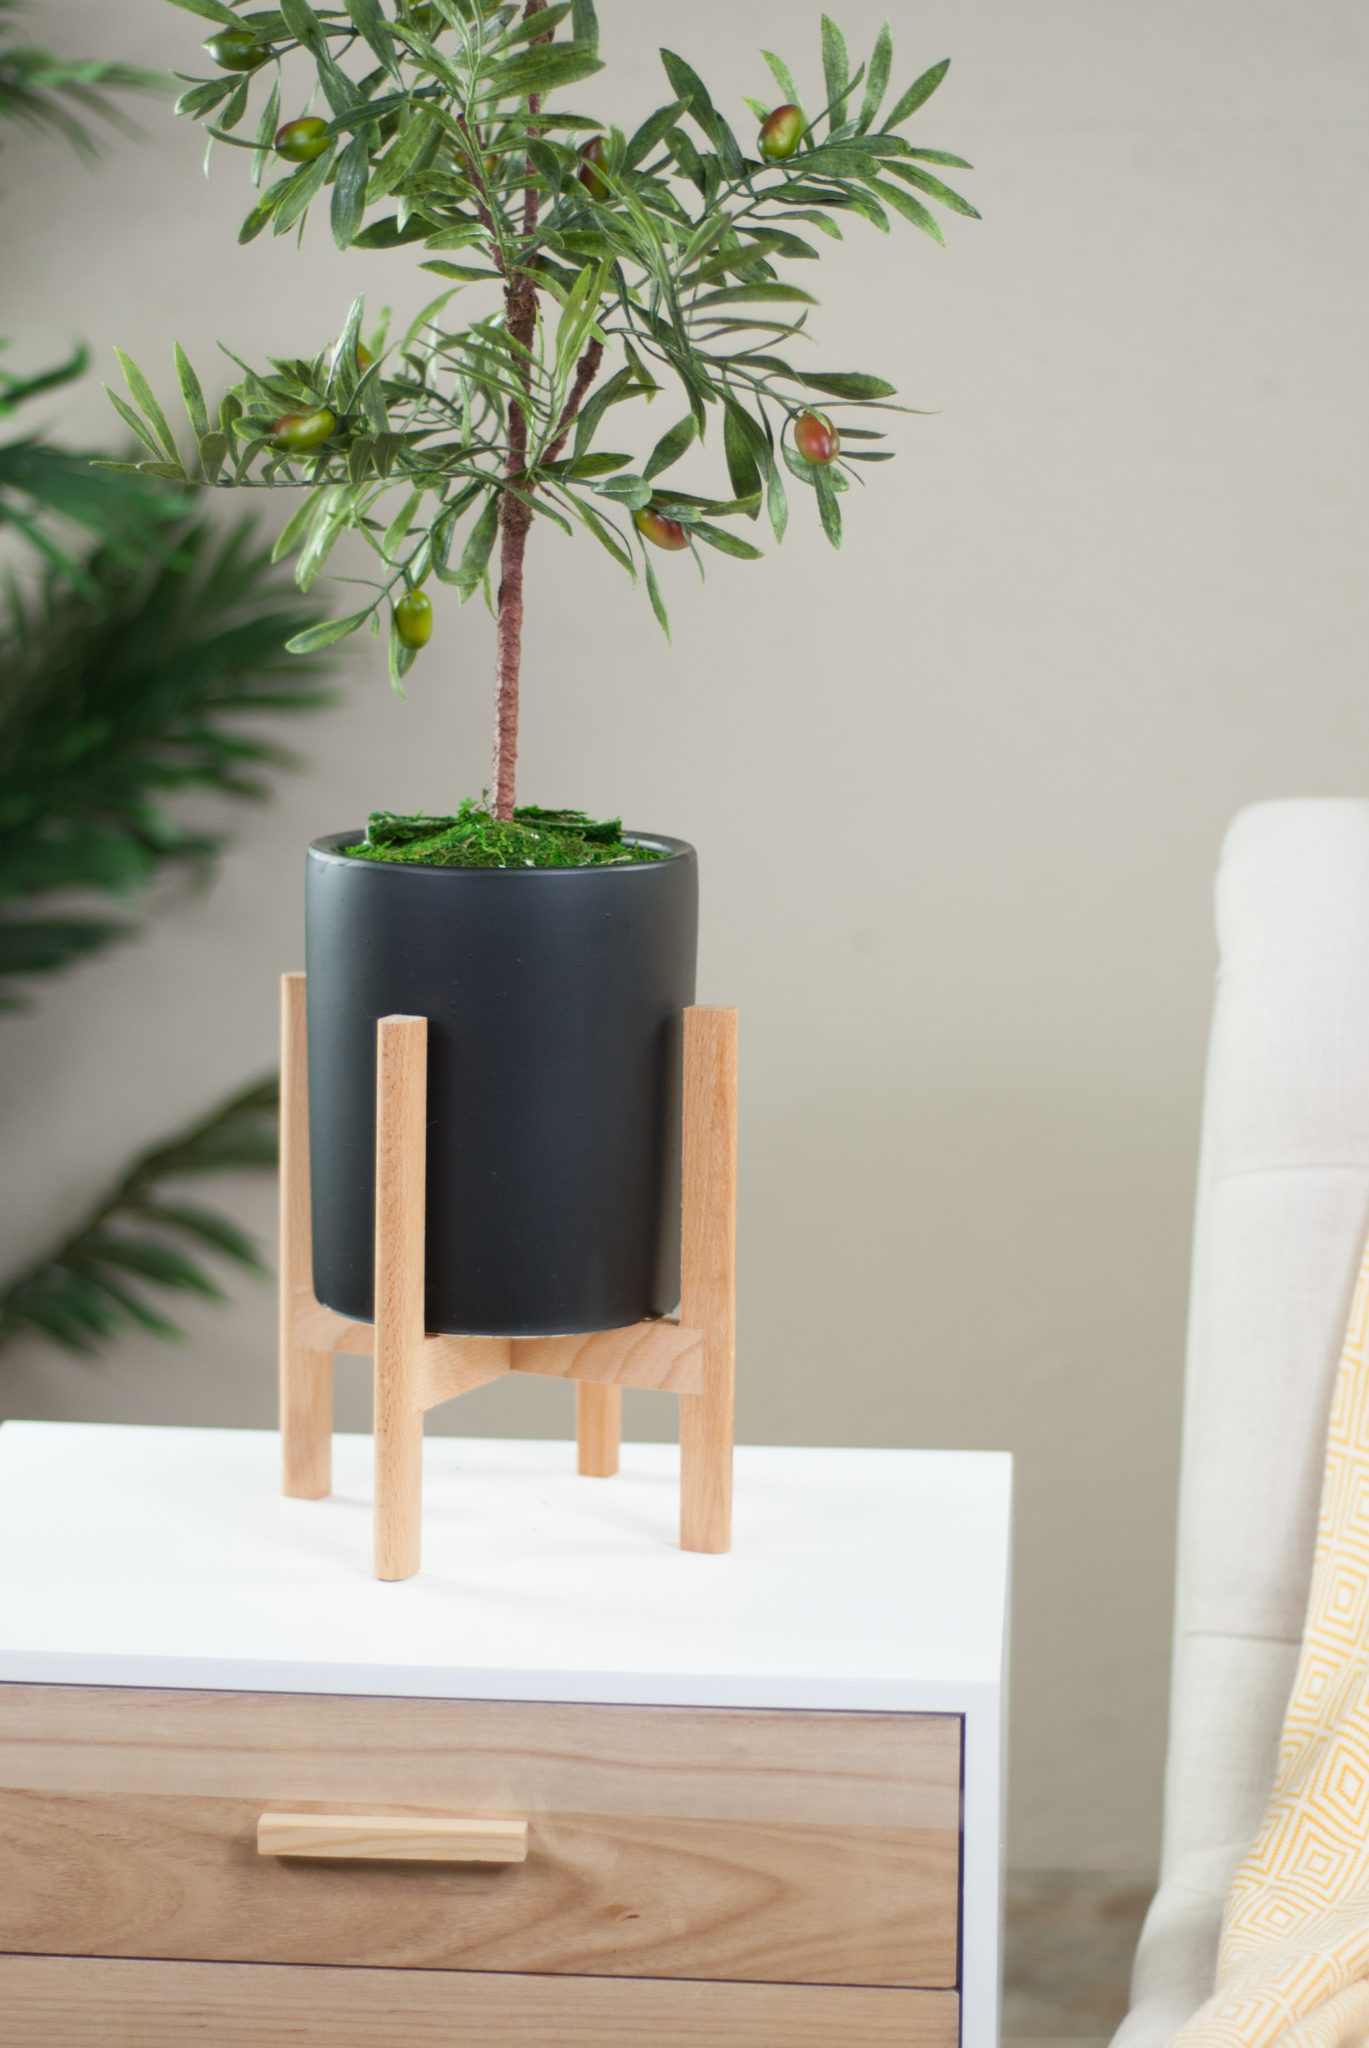 Upshining Ceramic Pots With Wood Stand Small Black Ceramic